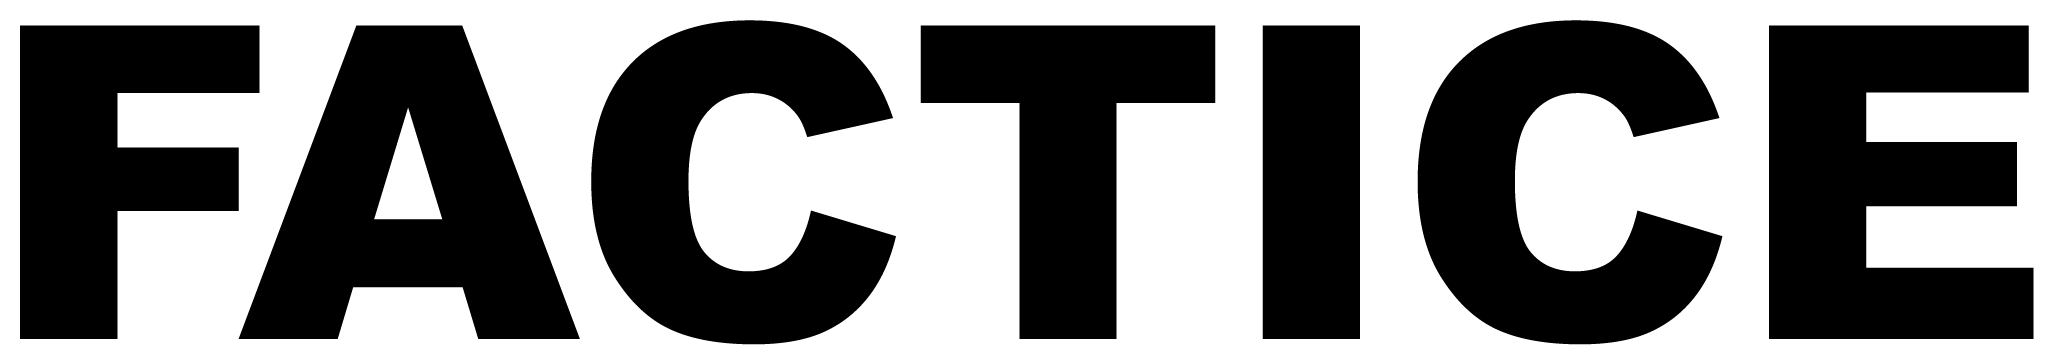 FACETICE LOGO.png